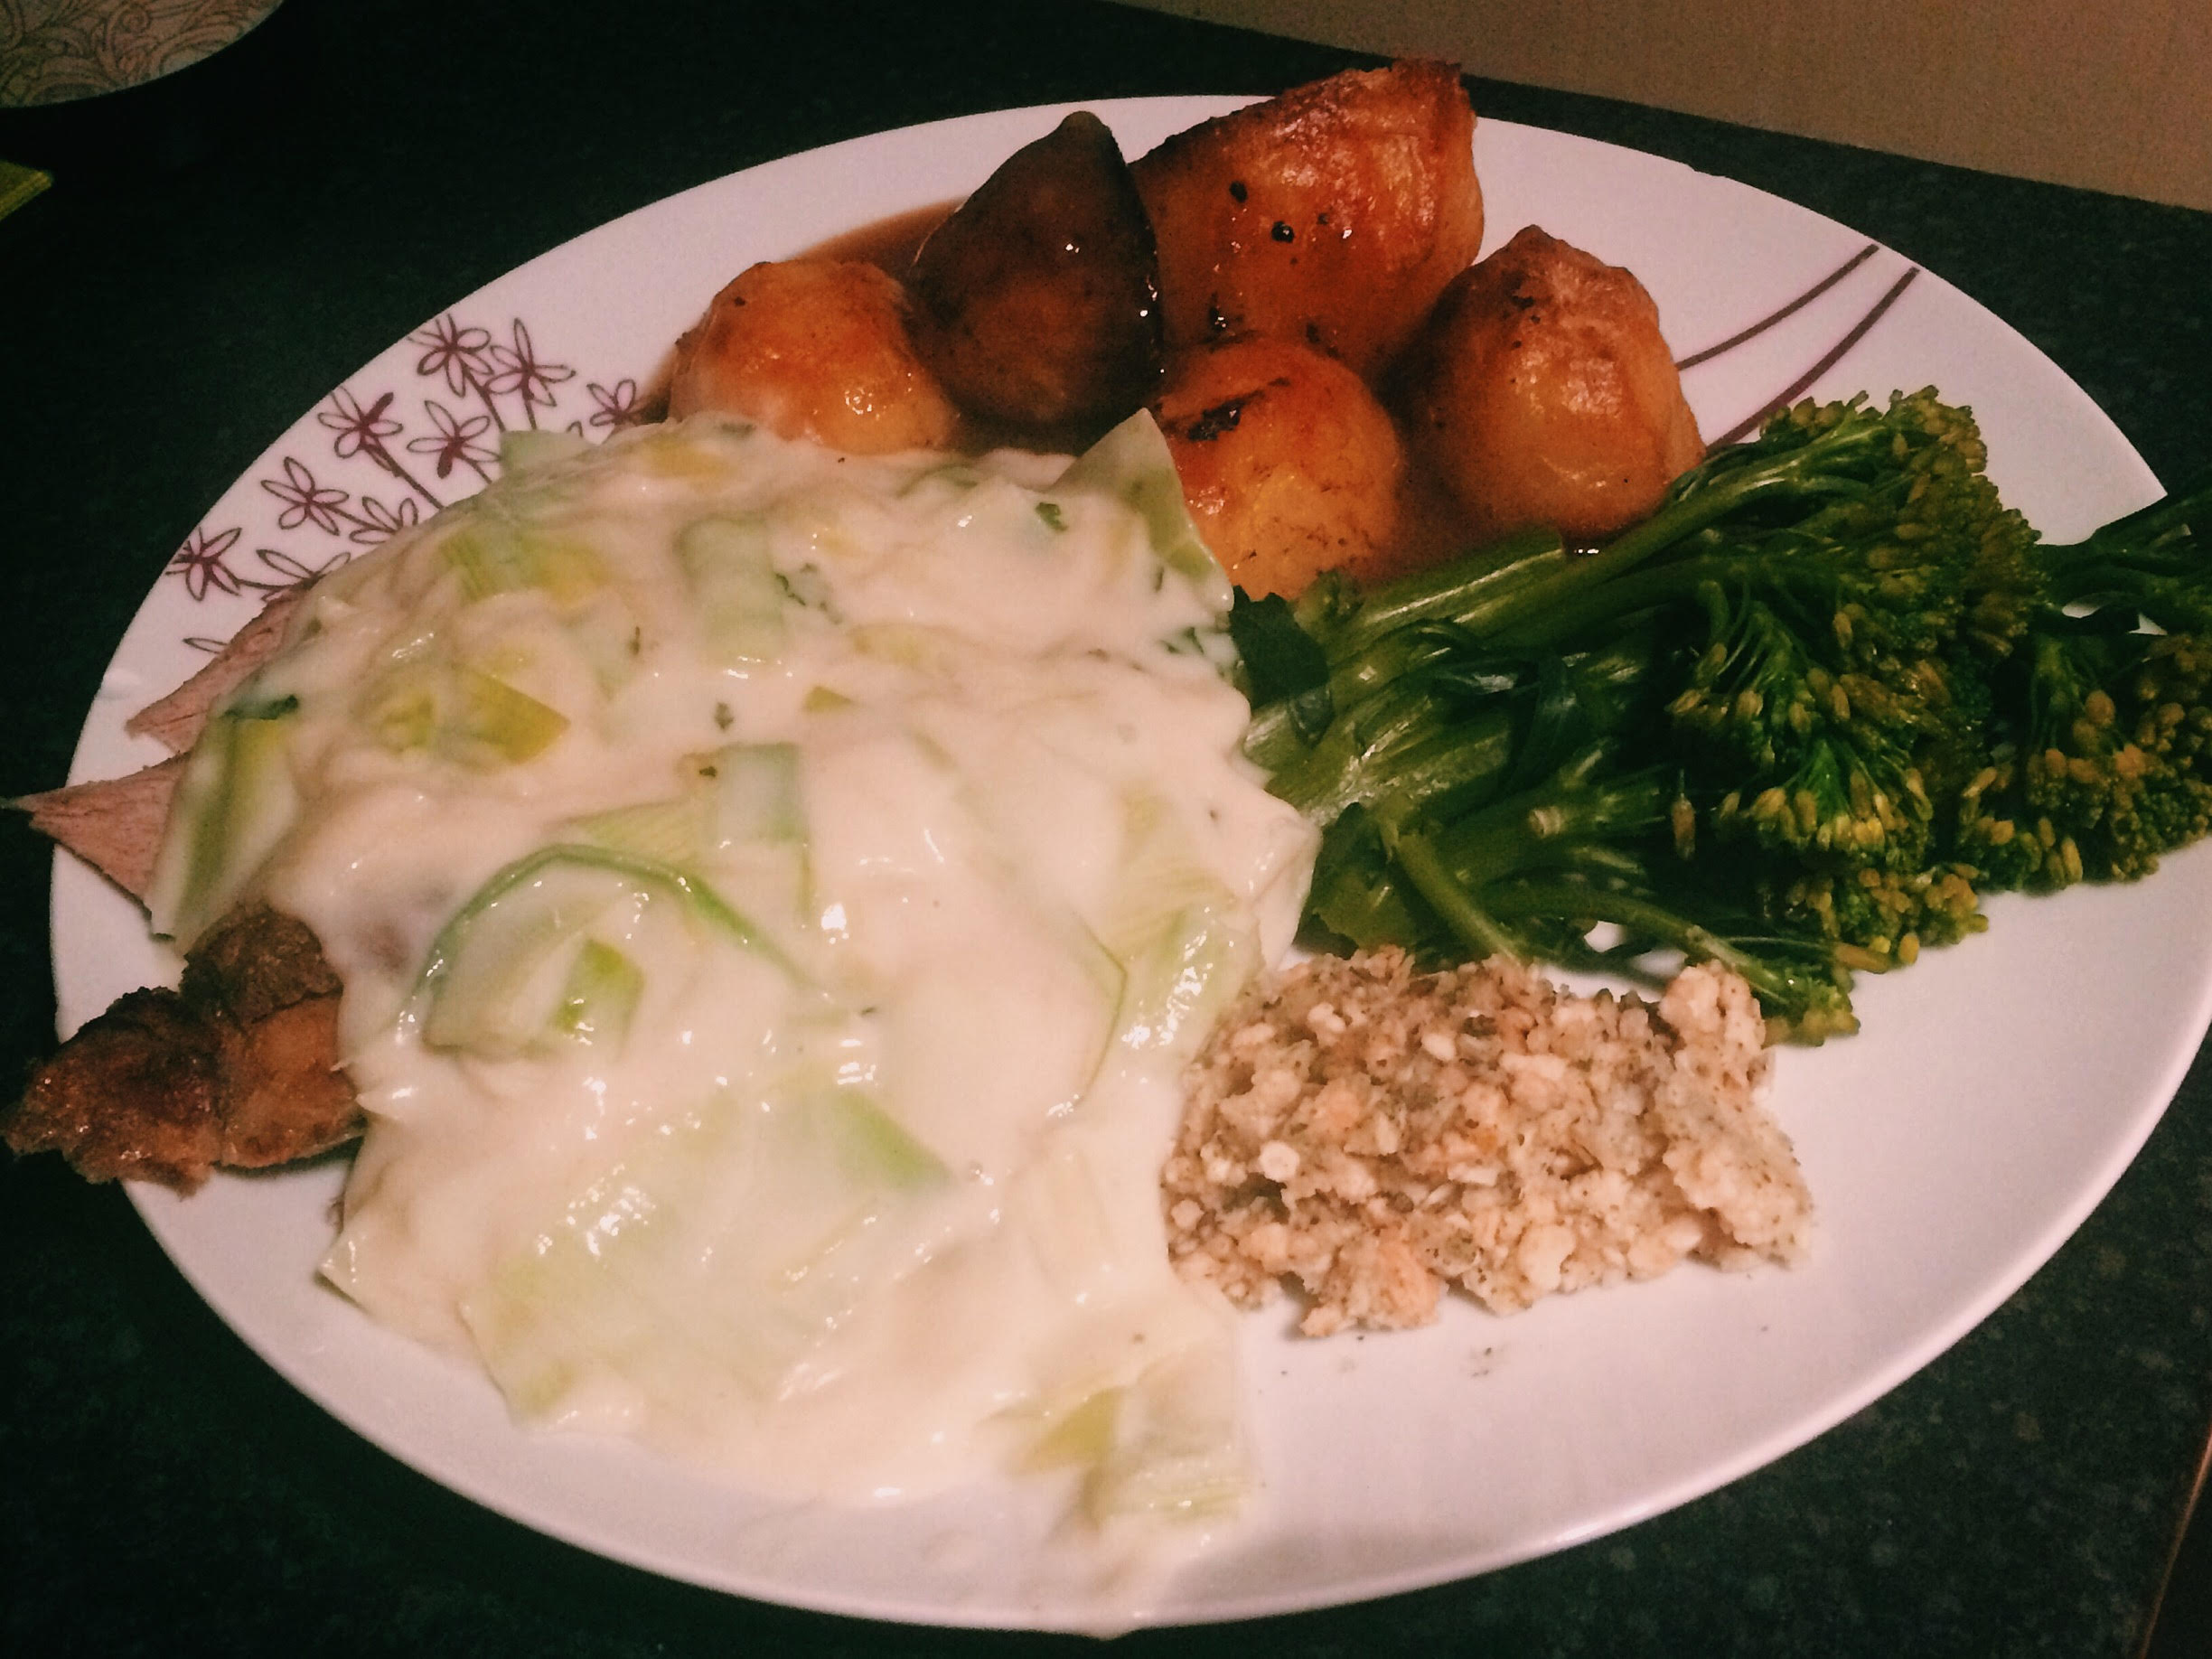 Lamb roast dinner topped with leek and mint sauce